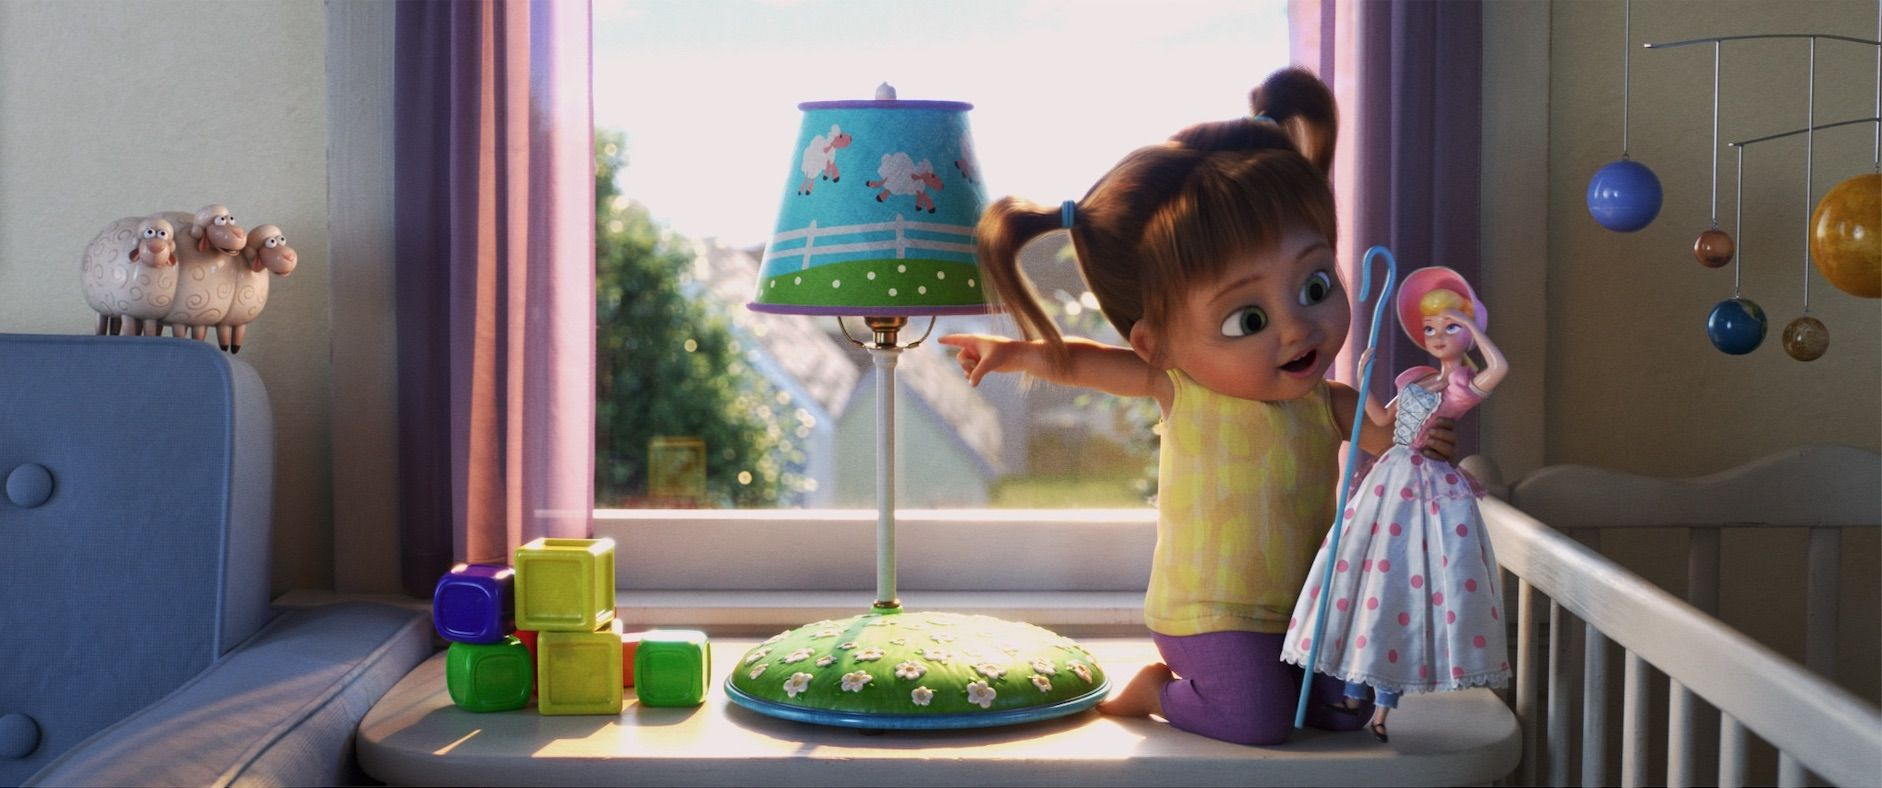 Lamp Life Bo Peep Becomes A Lost Toy In Pixar S New Disney Short Indiewire In 2020 Pixar Disney Plus Disney Shorts